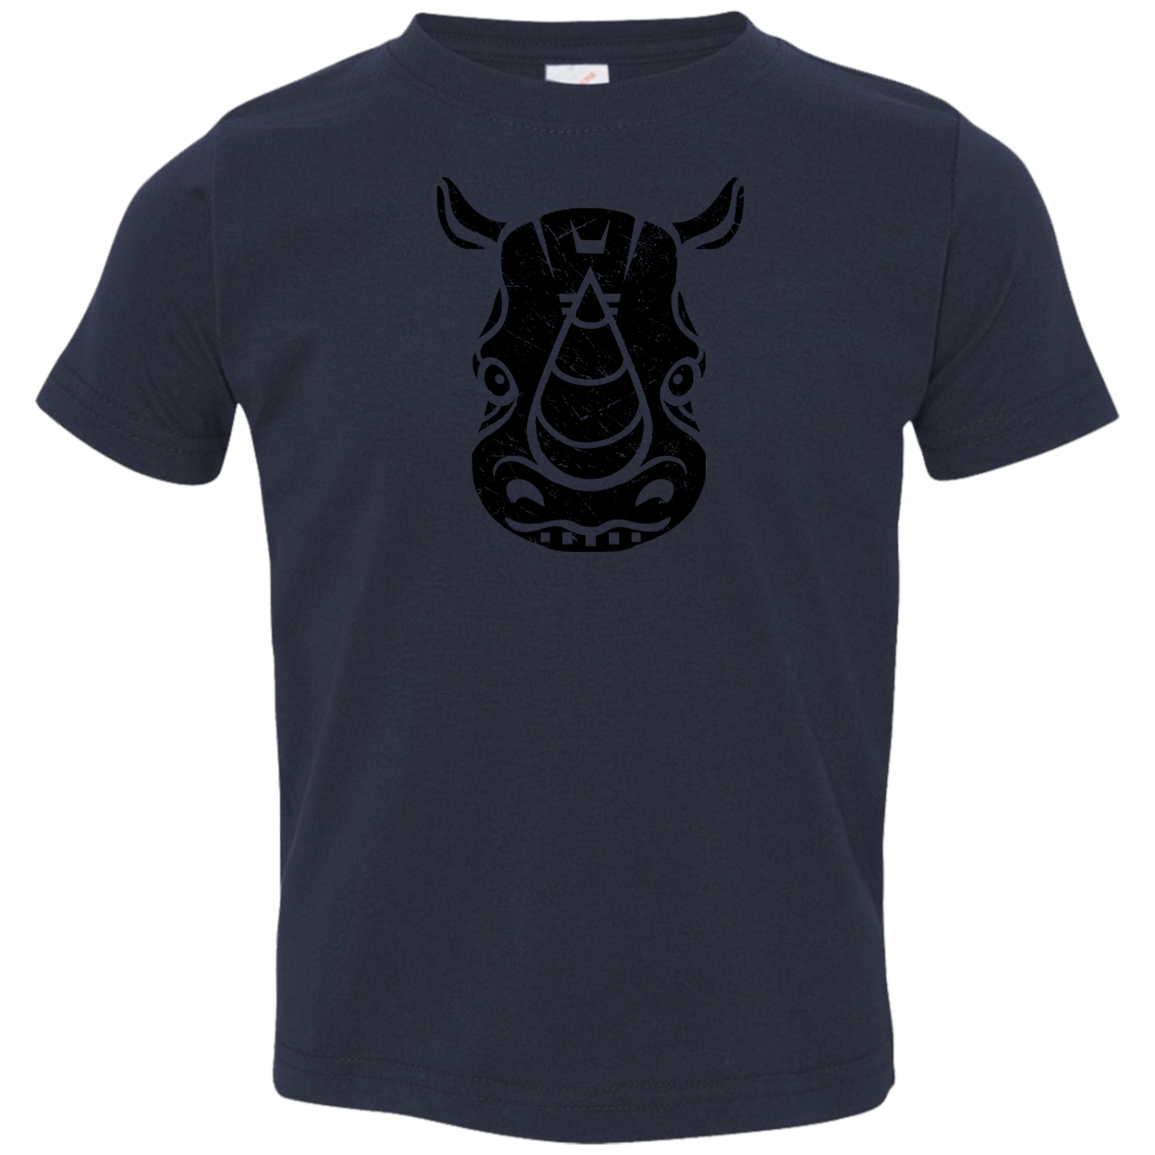 Black Distressed Emblem T-Shirt for Toddlers (Rhino/Tank)